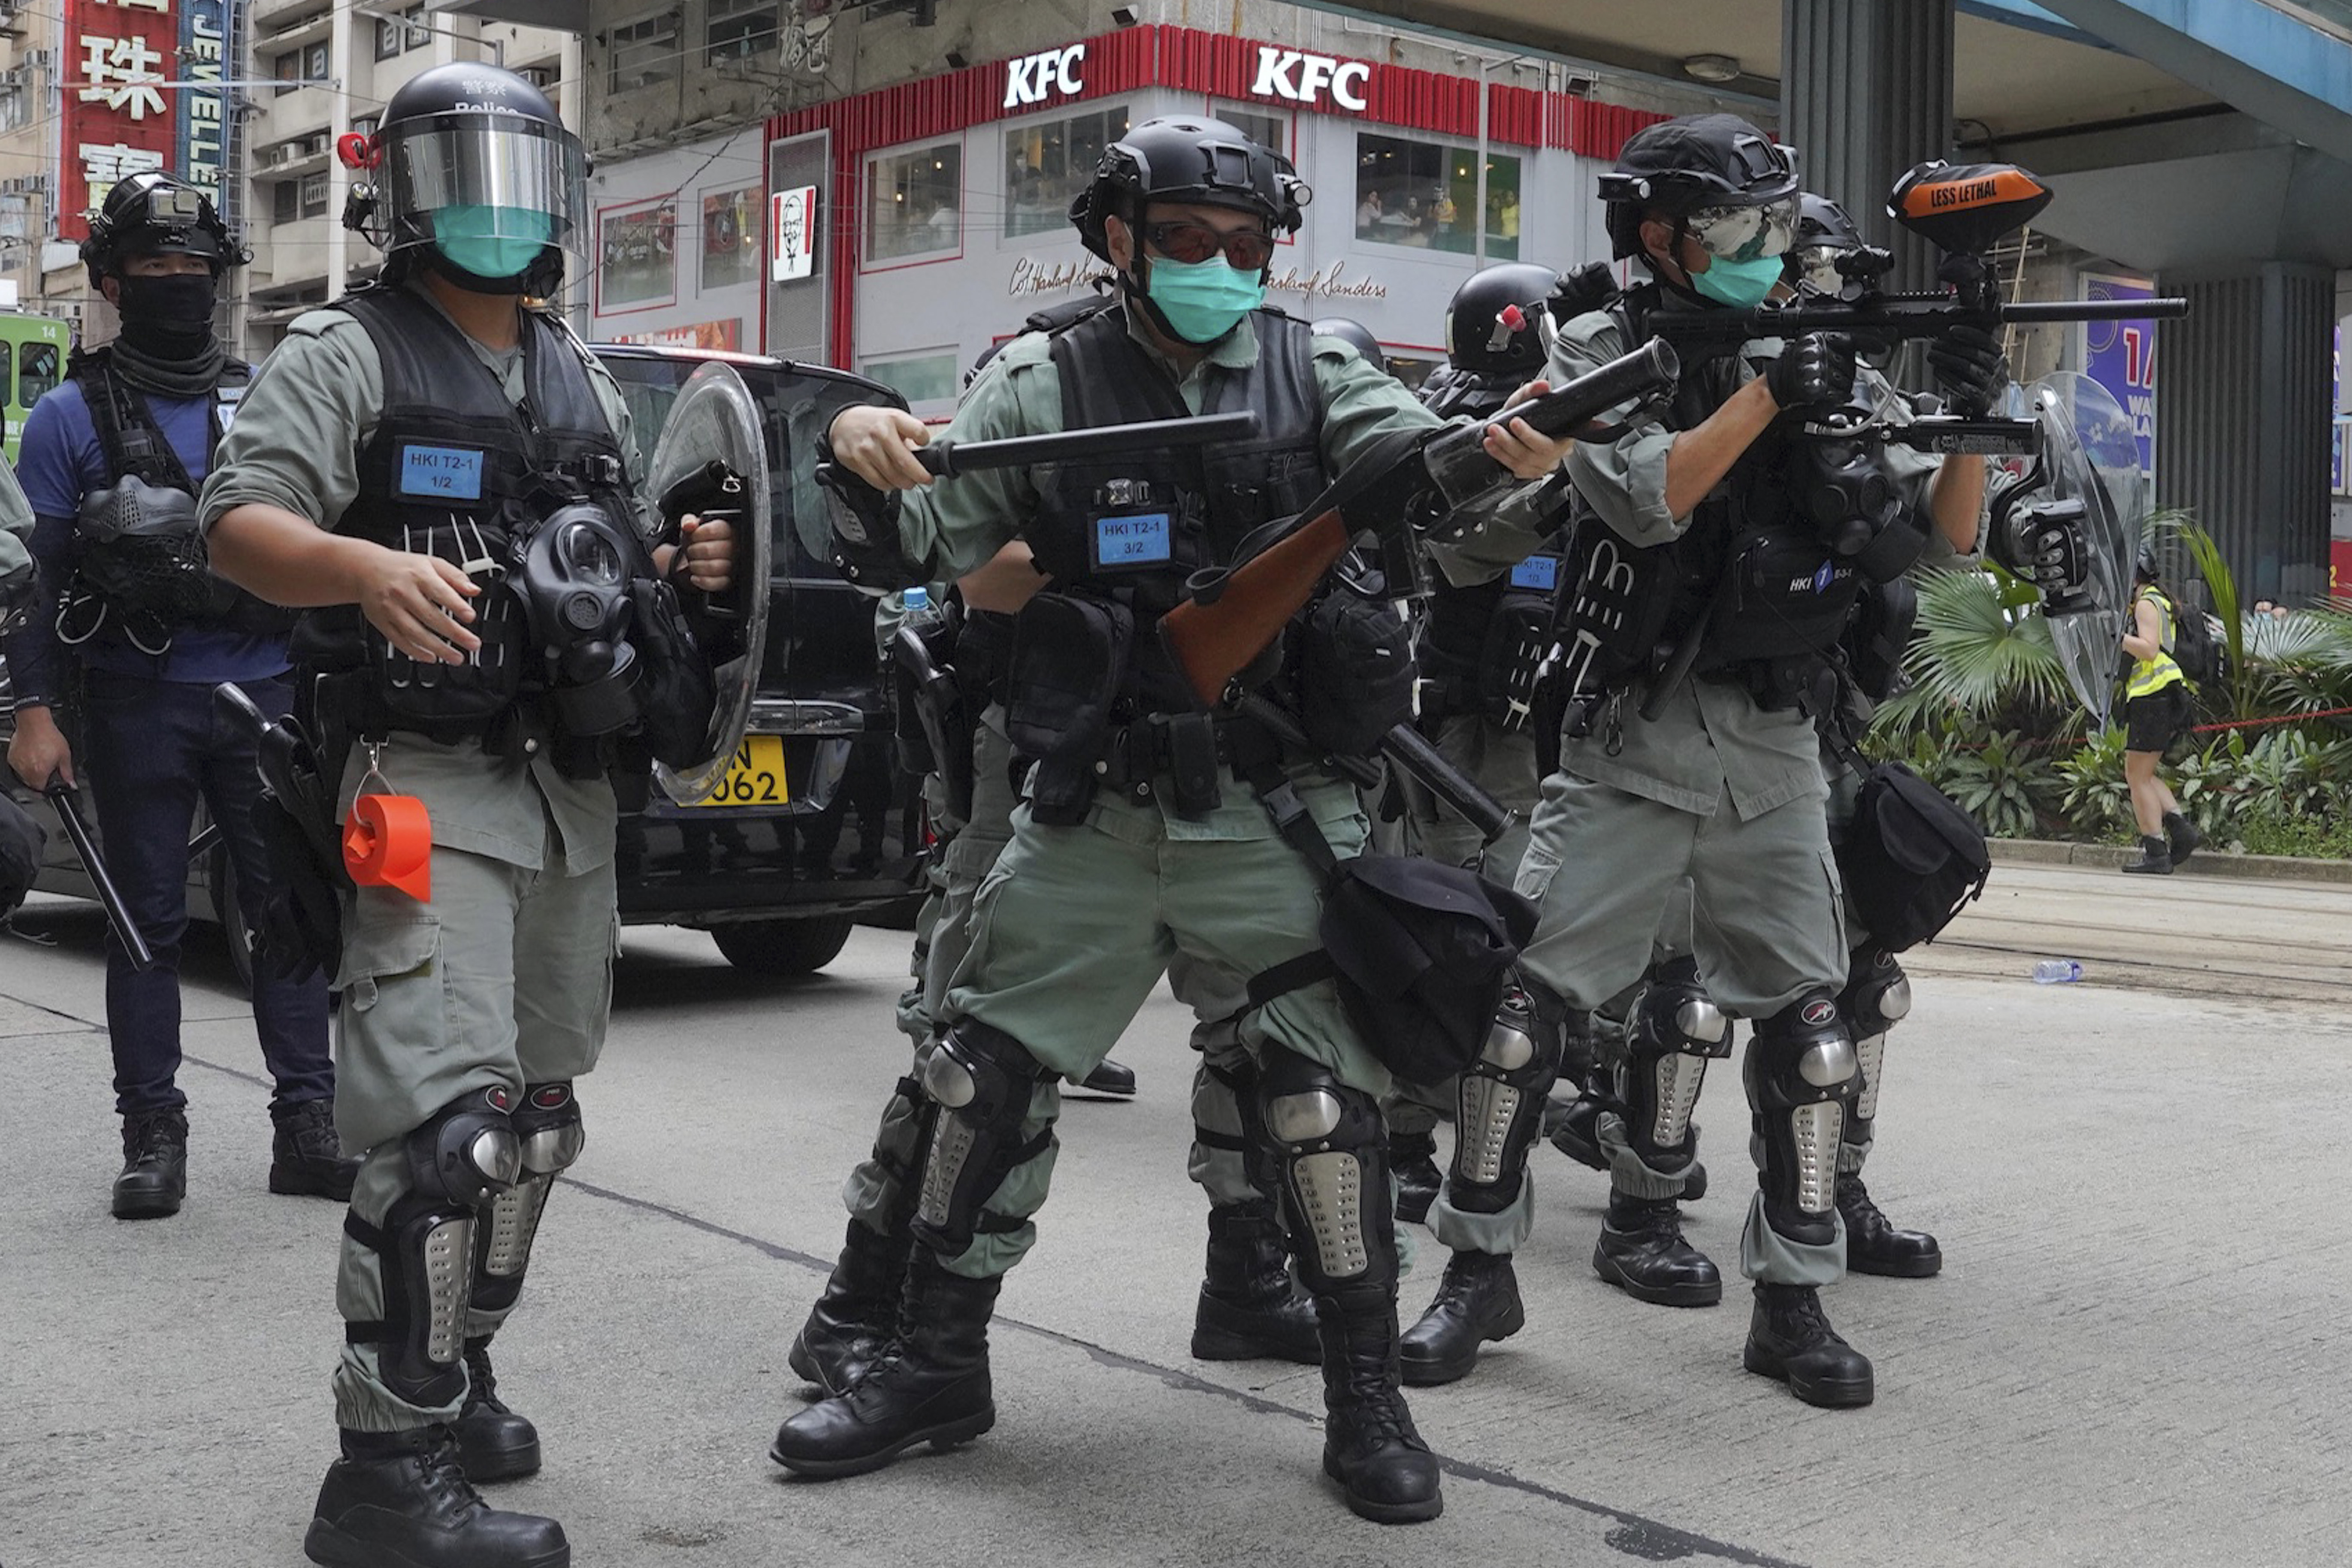 Hong Kong riot police fire tear gas as hundreds of protesters march along a downtown street during a pro-democracy protest against Beijing's national security legislation in Hong Kong, Sunday, May 24, 2020.